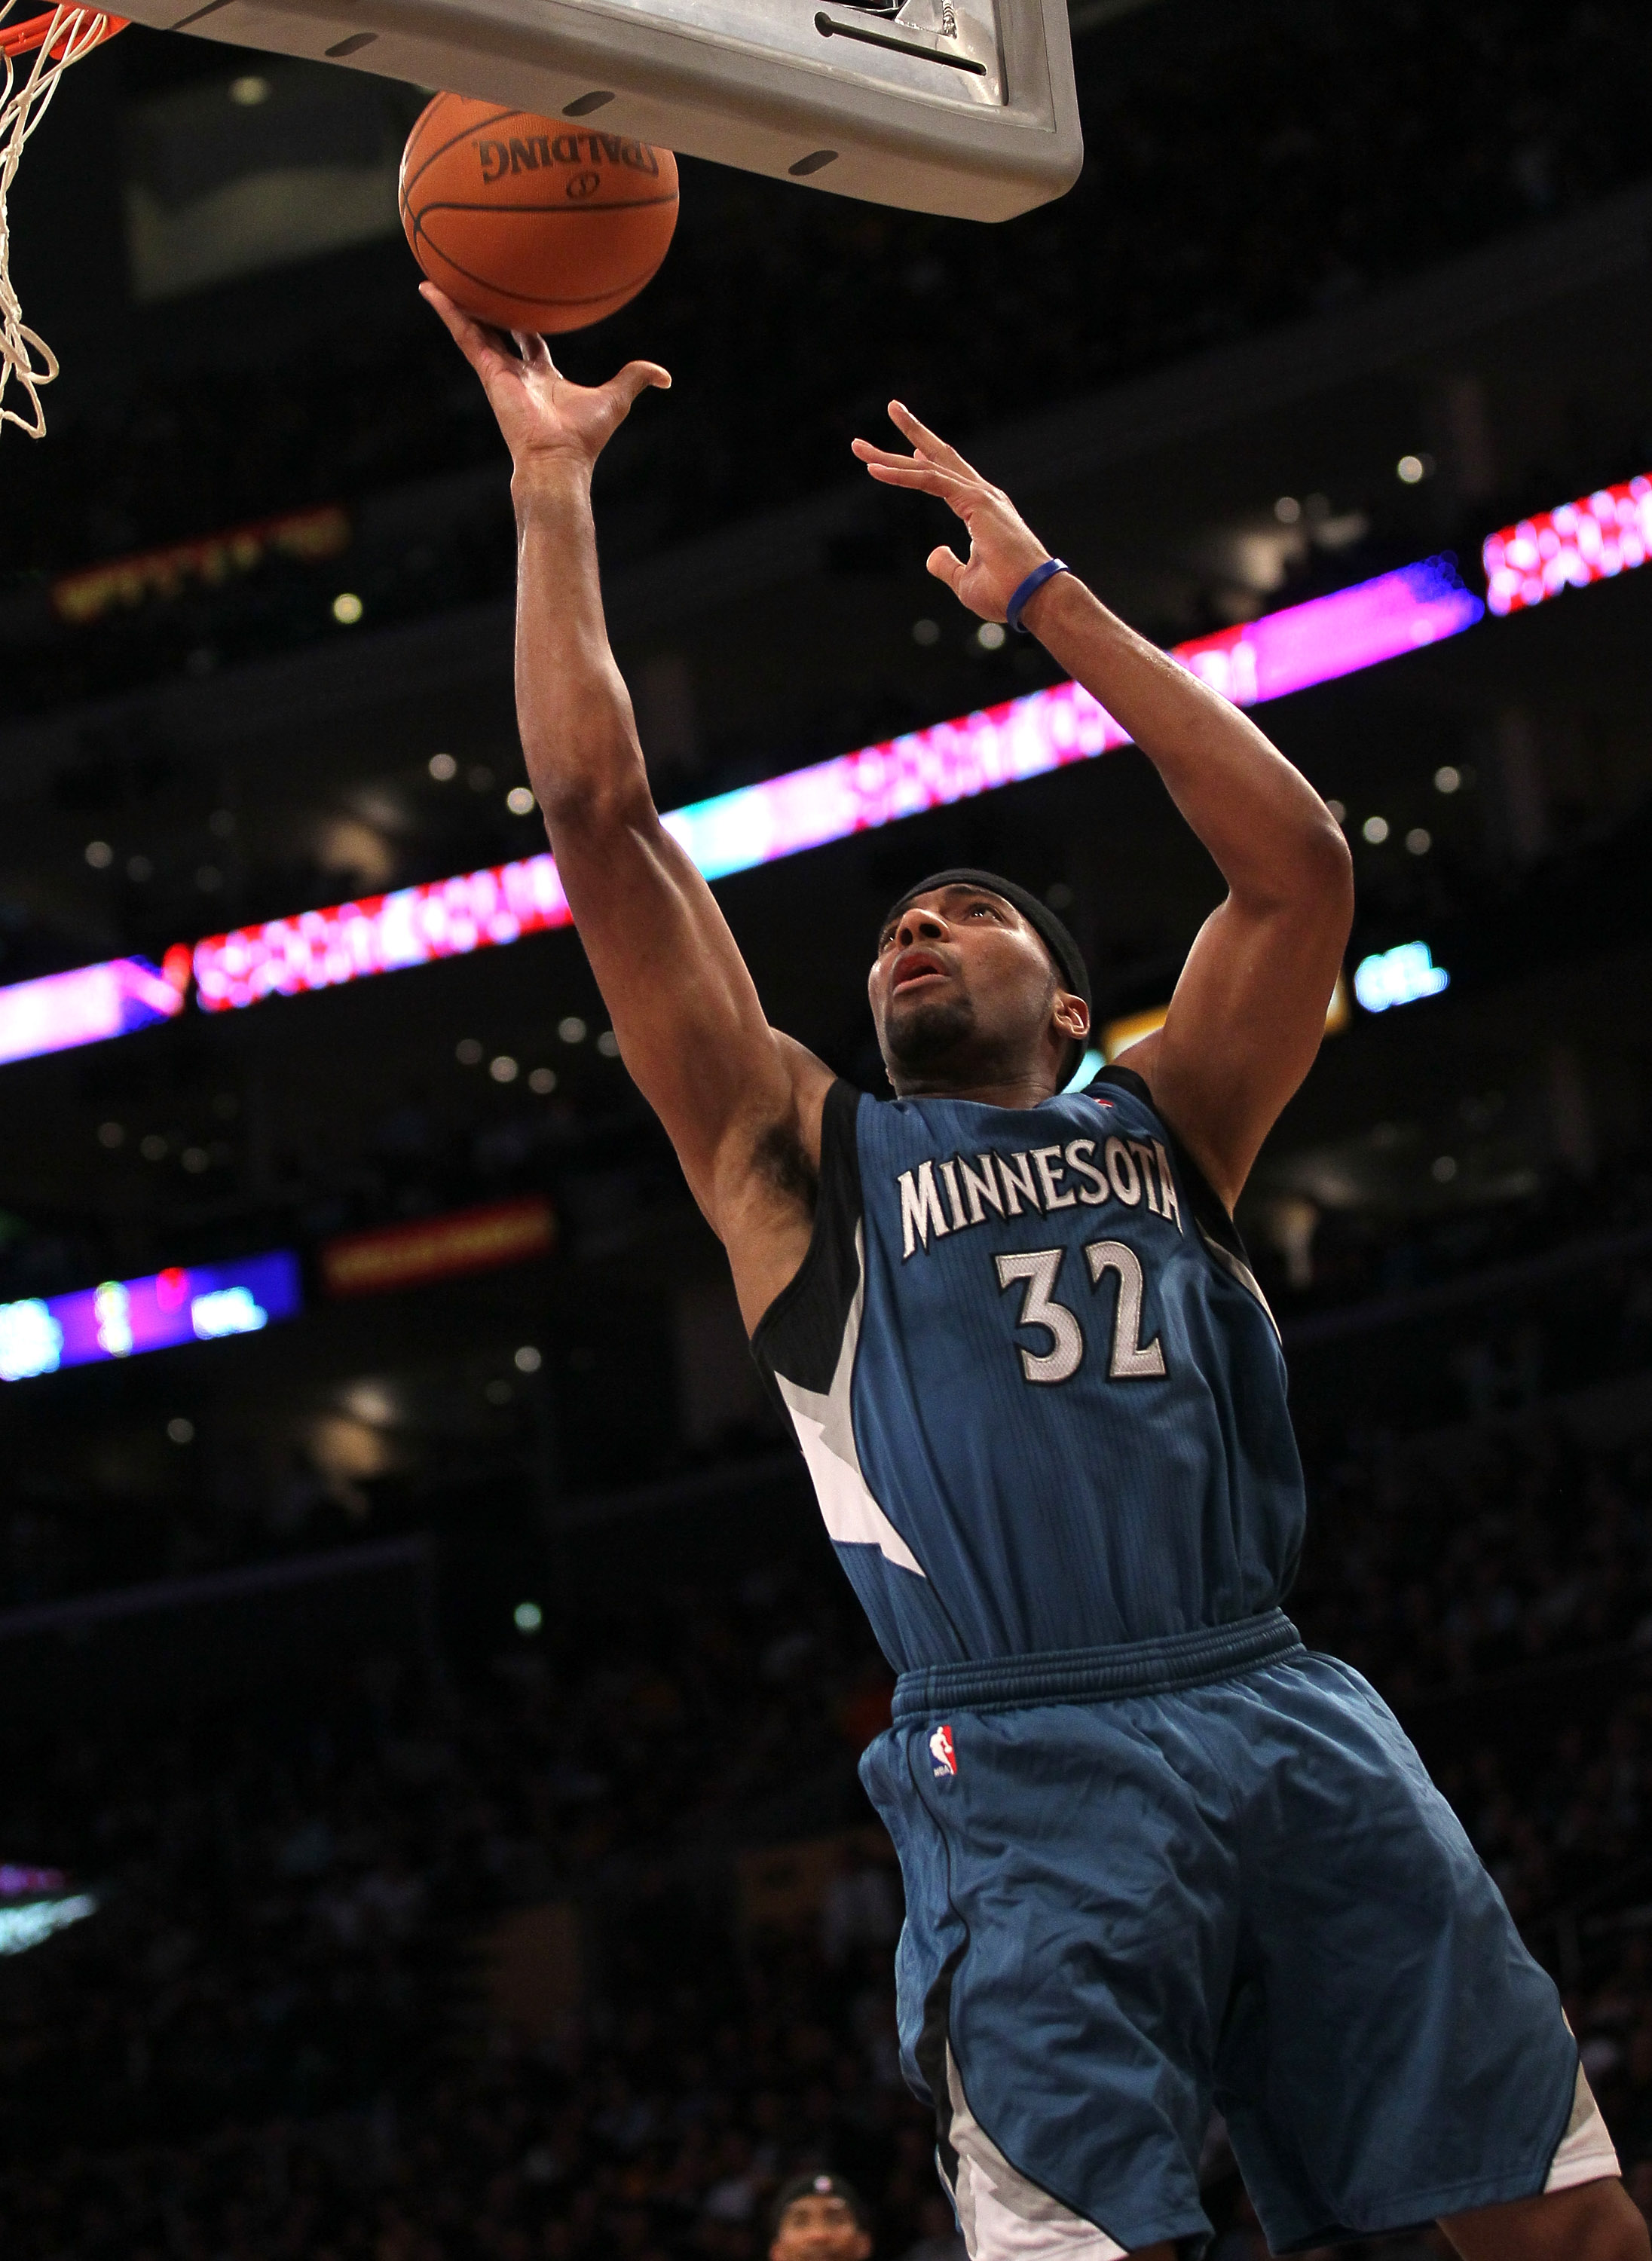 LOS ANGELES - NOVEMBER 9:  Lazar Hayward #32 of the Minnesota Timberwolves shoots against the Los Angeles Lakers at Staples Center on November 9, 2010 in Los Angeles, California. The Lakers won 99-94.   NOTE TO USER: User expressly acknowledges and agrees